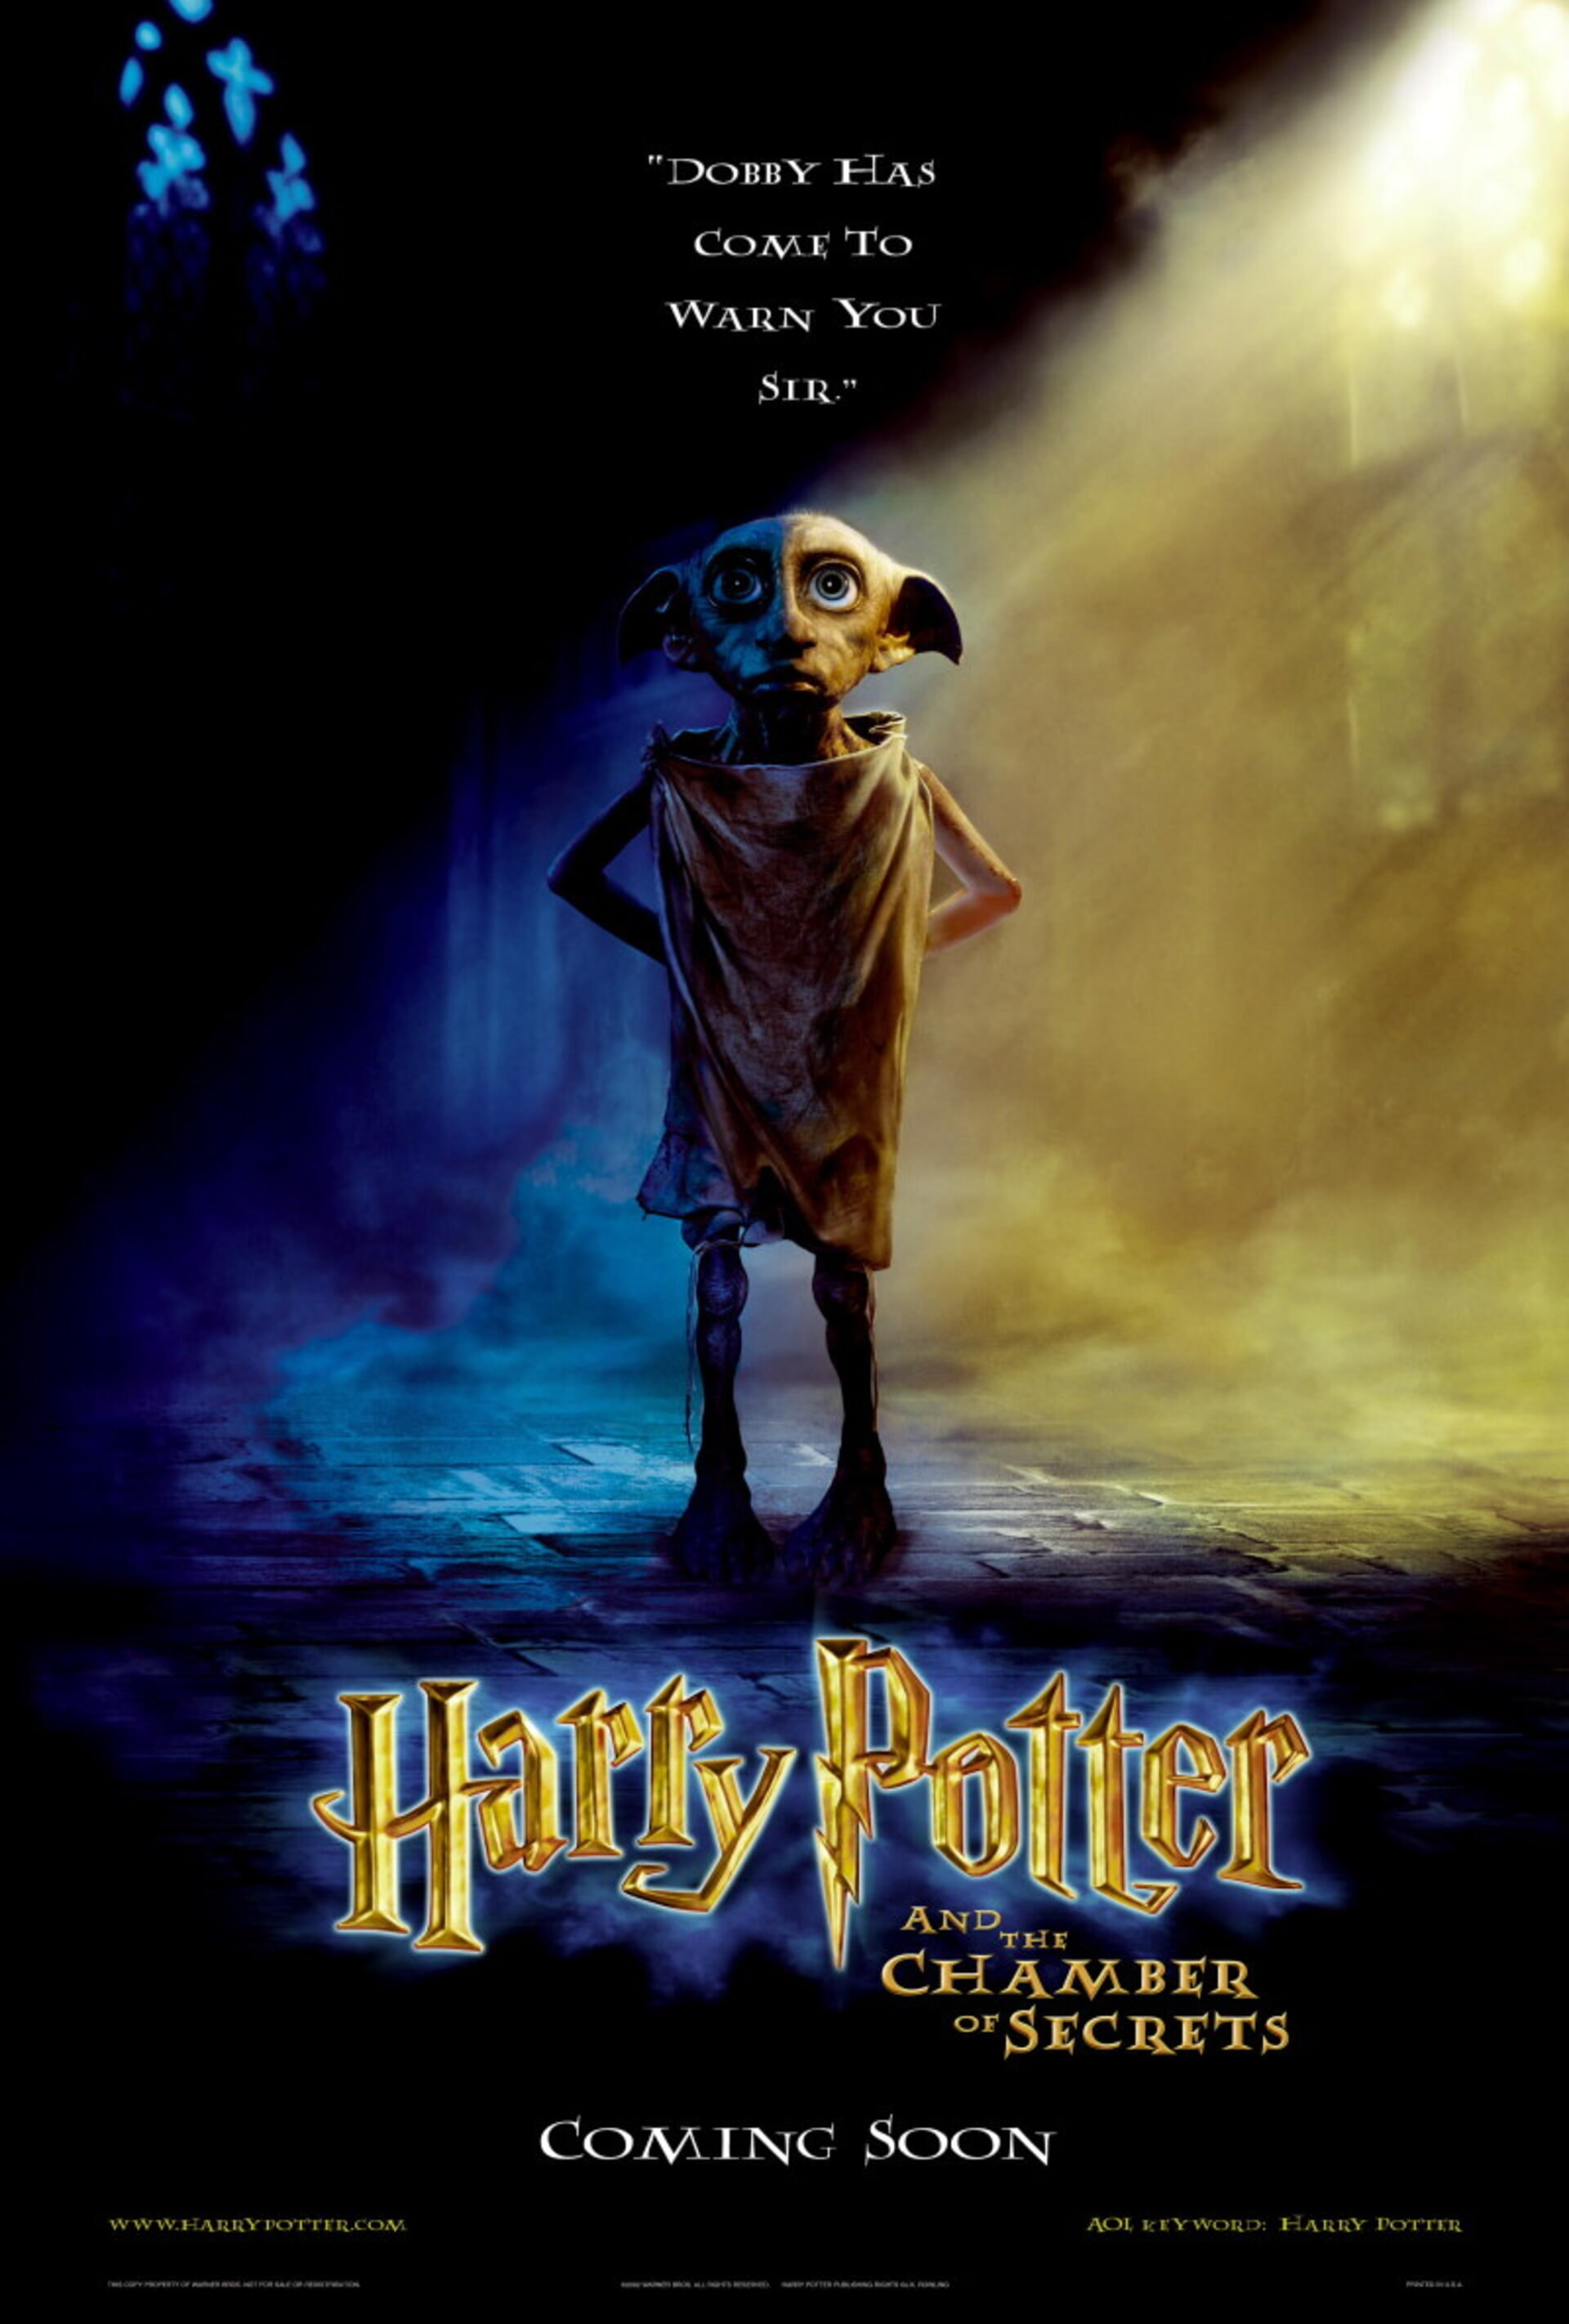 Harry Potter and the Chamber of Secrets - Poster 2